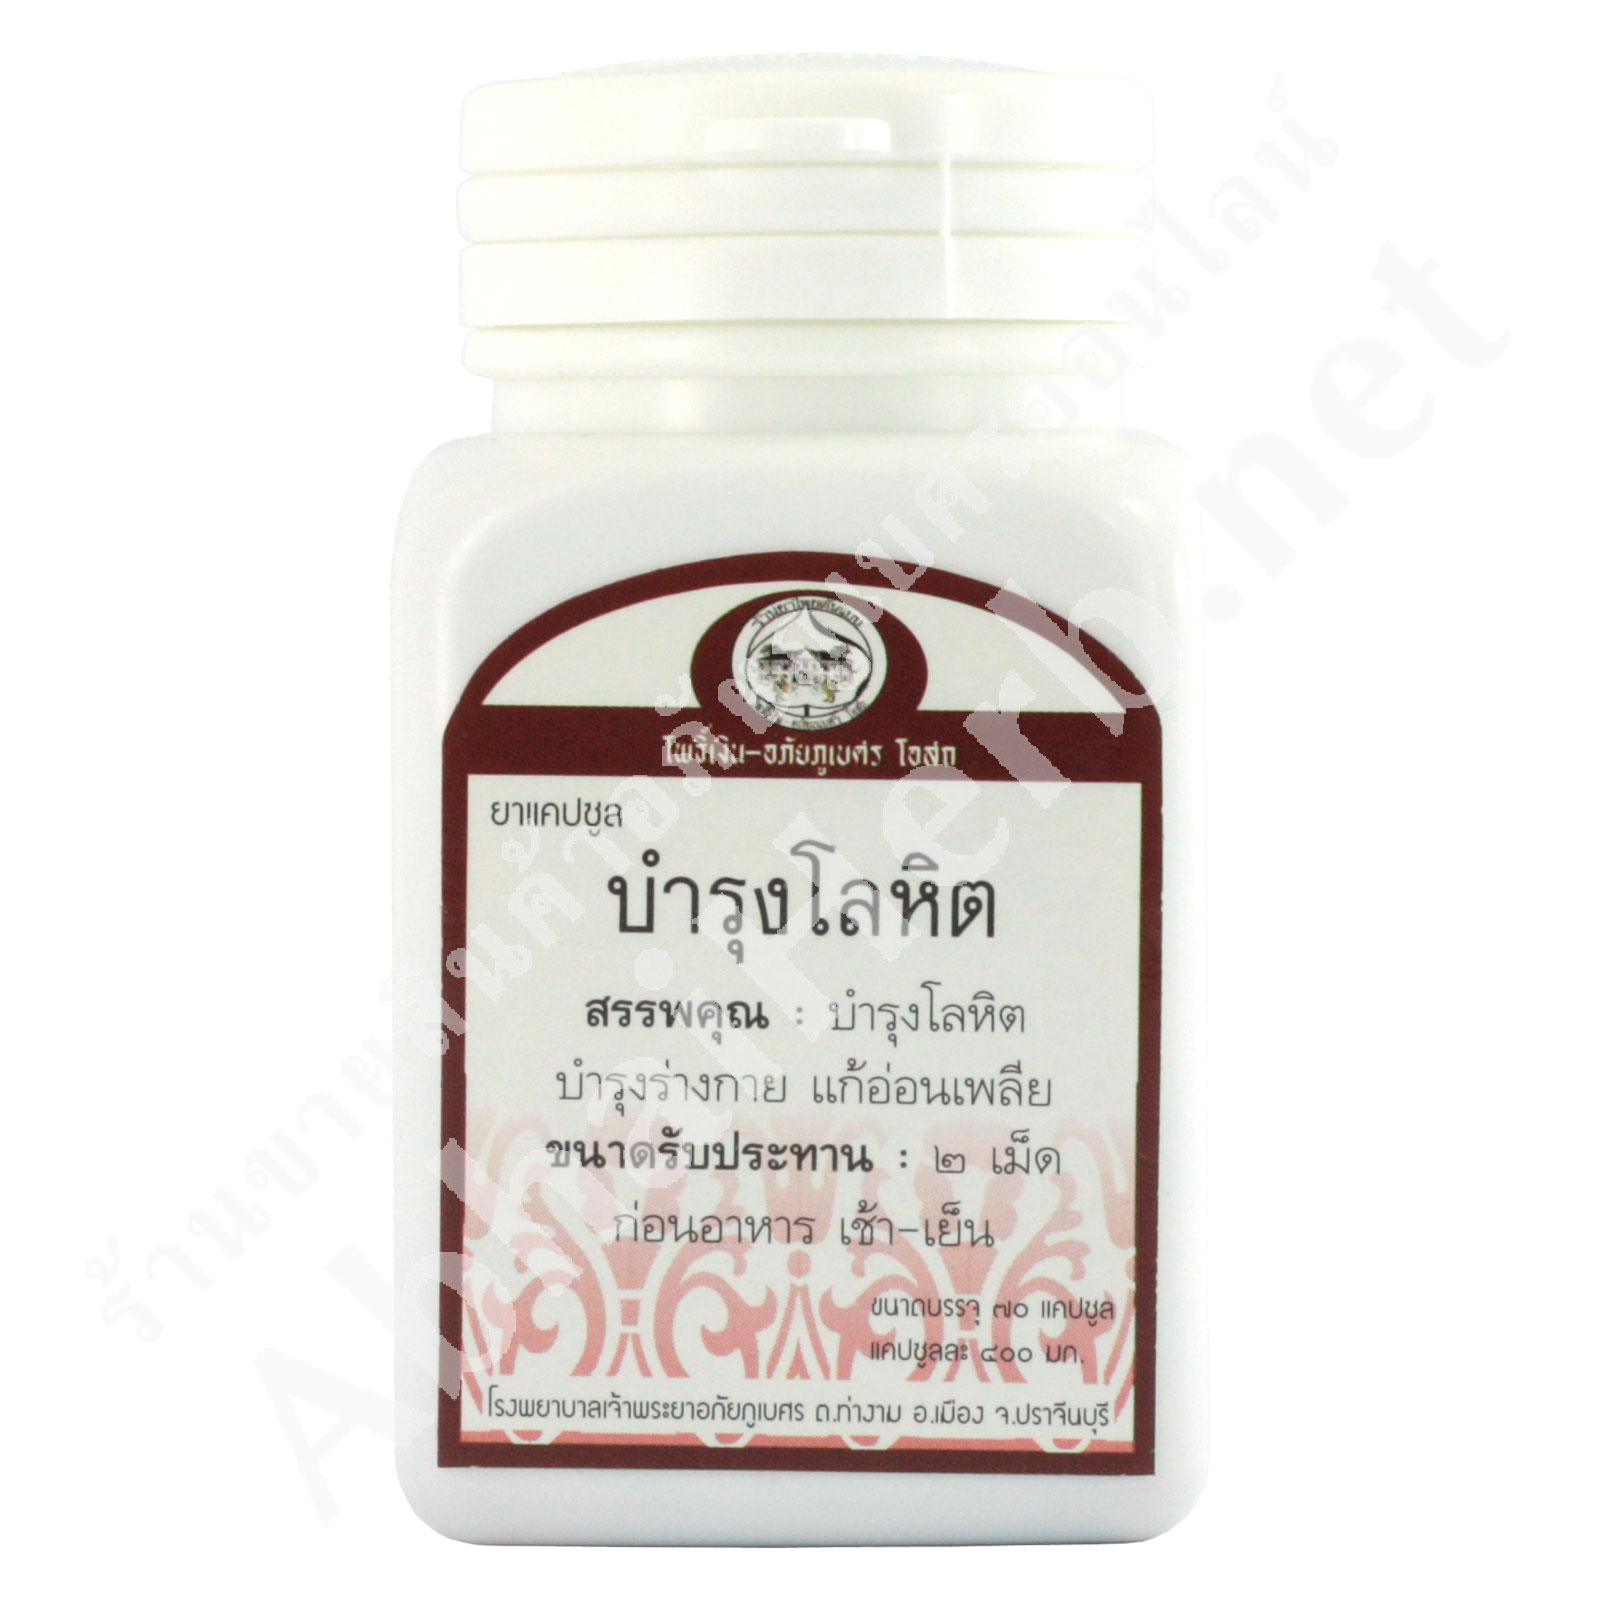 Healthy Blood Capsules (400 mg. 70 Capsules) - 'Silver Bodhi' Thai Traditional Medicine Shop, Abhaibhubejhr Osod